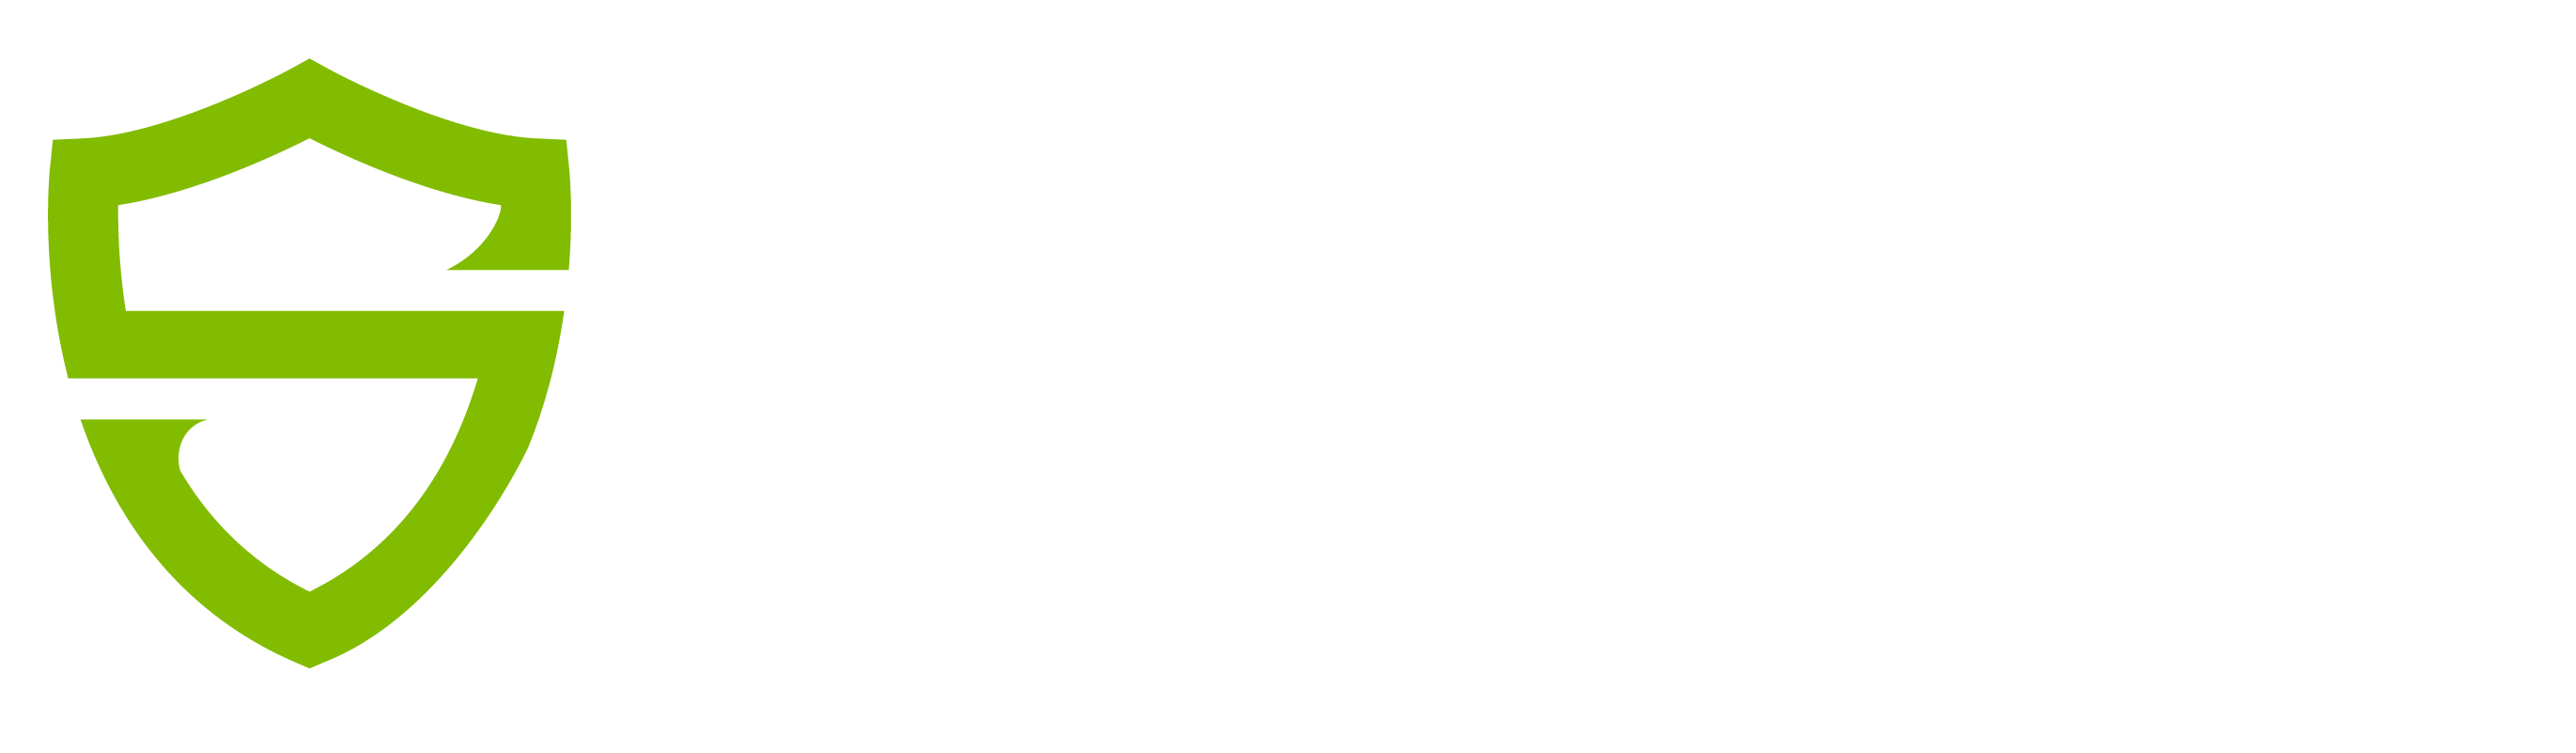 Somerset Painting & Home Improvements Logo